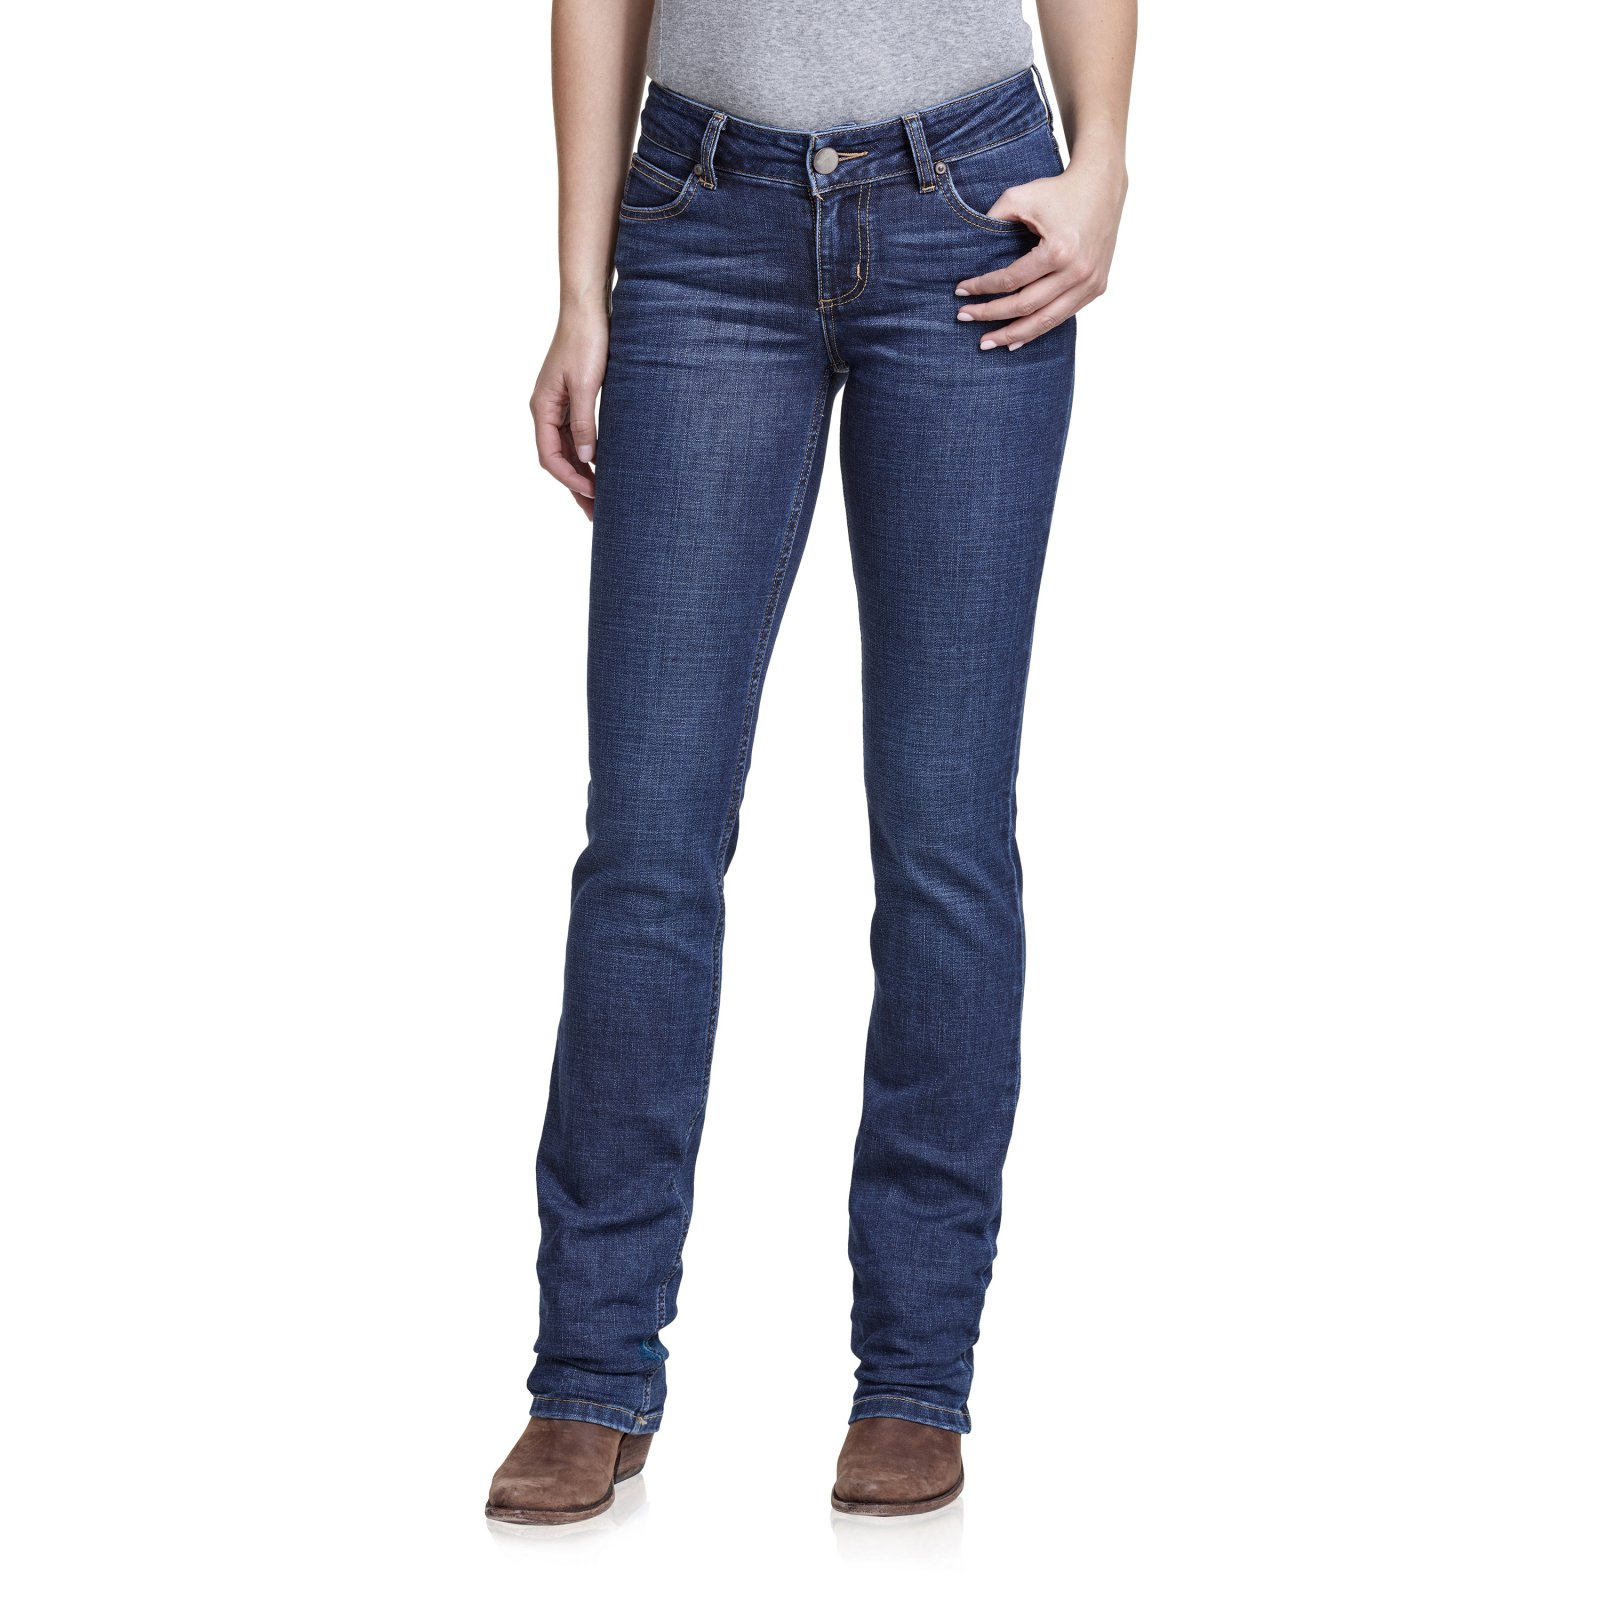 MId-Rise Jean from Wrangler